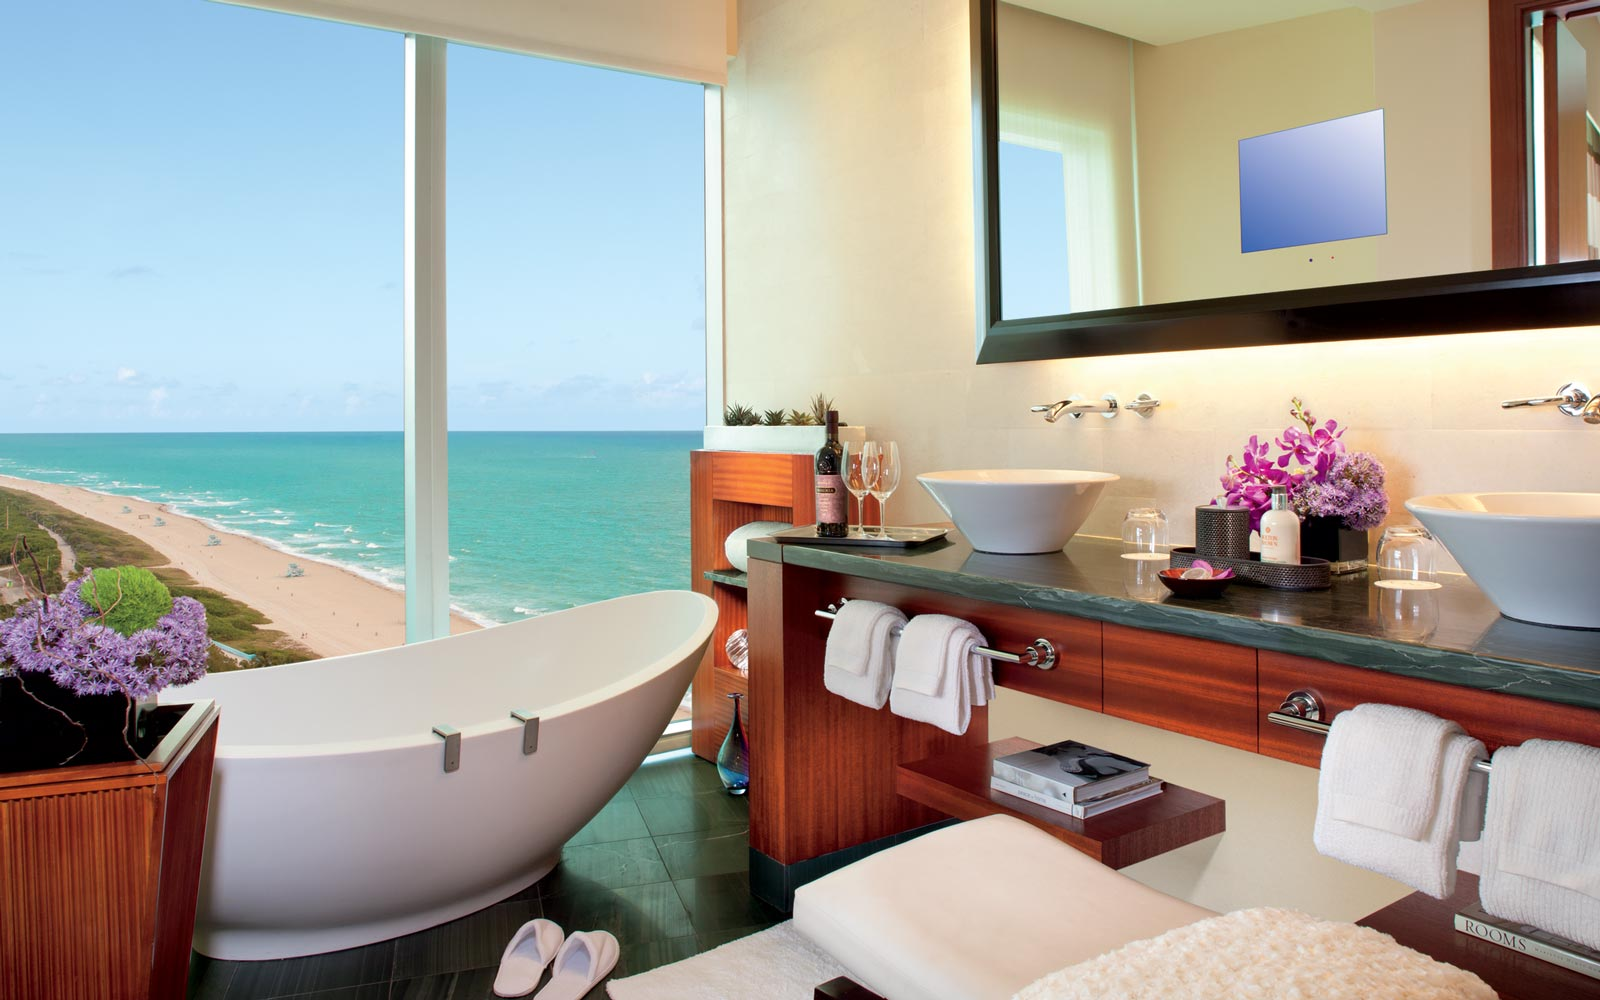 These Beautiful Hotel Bathtubs Are Proof You Should Switch Up Your Shower Routine on Vacation